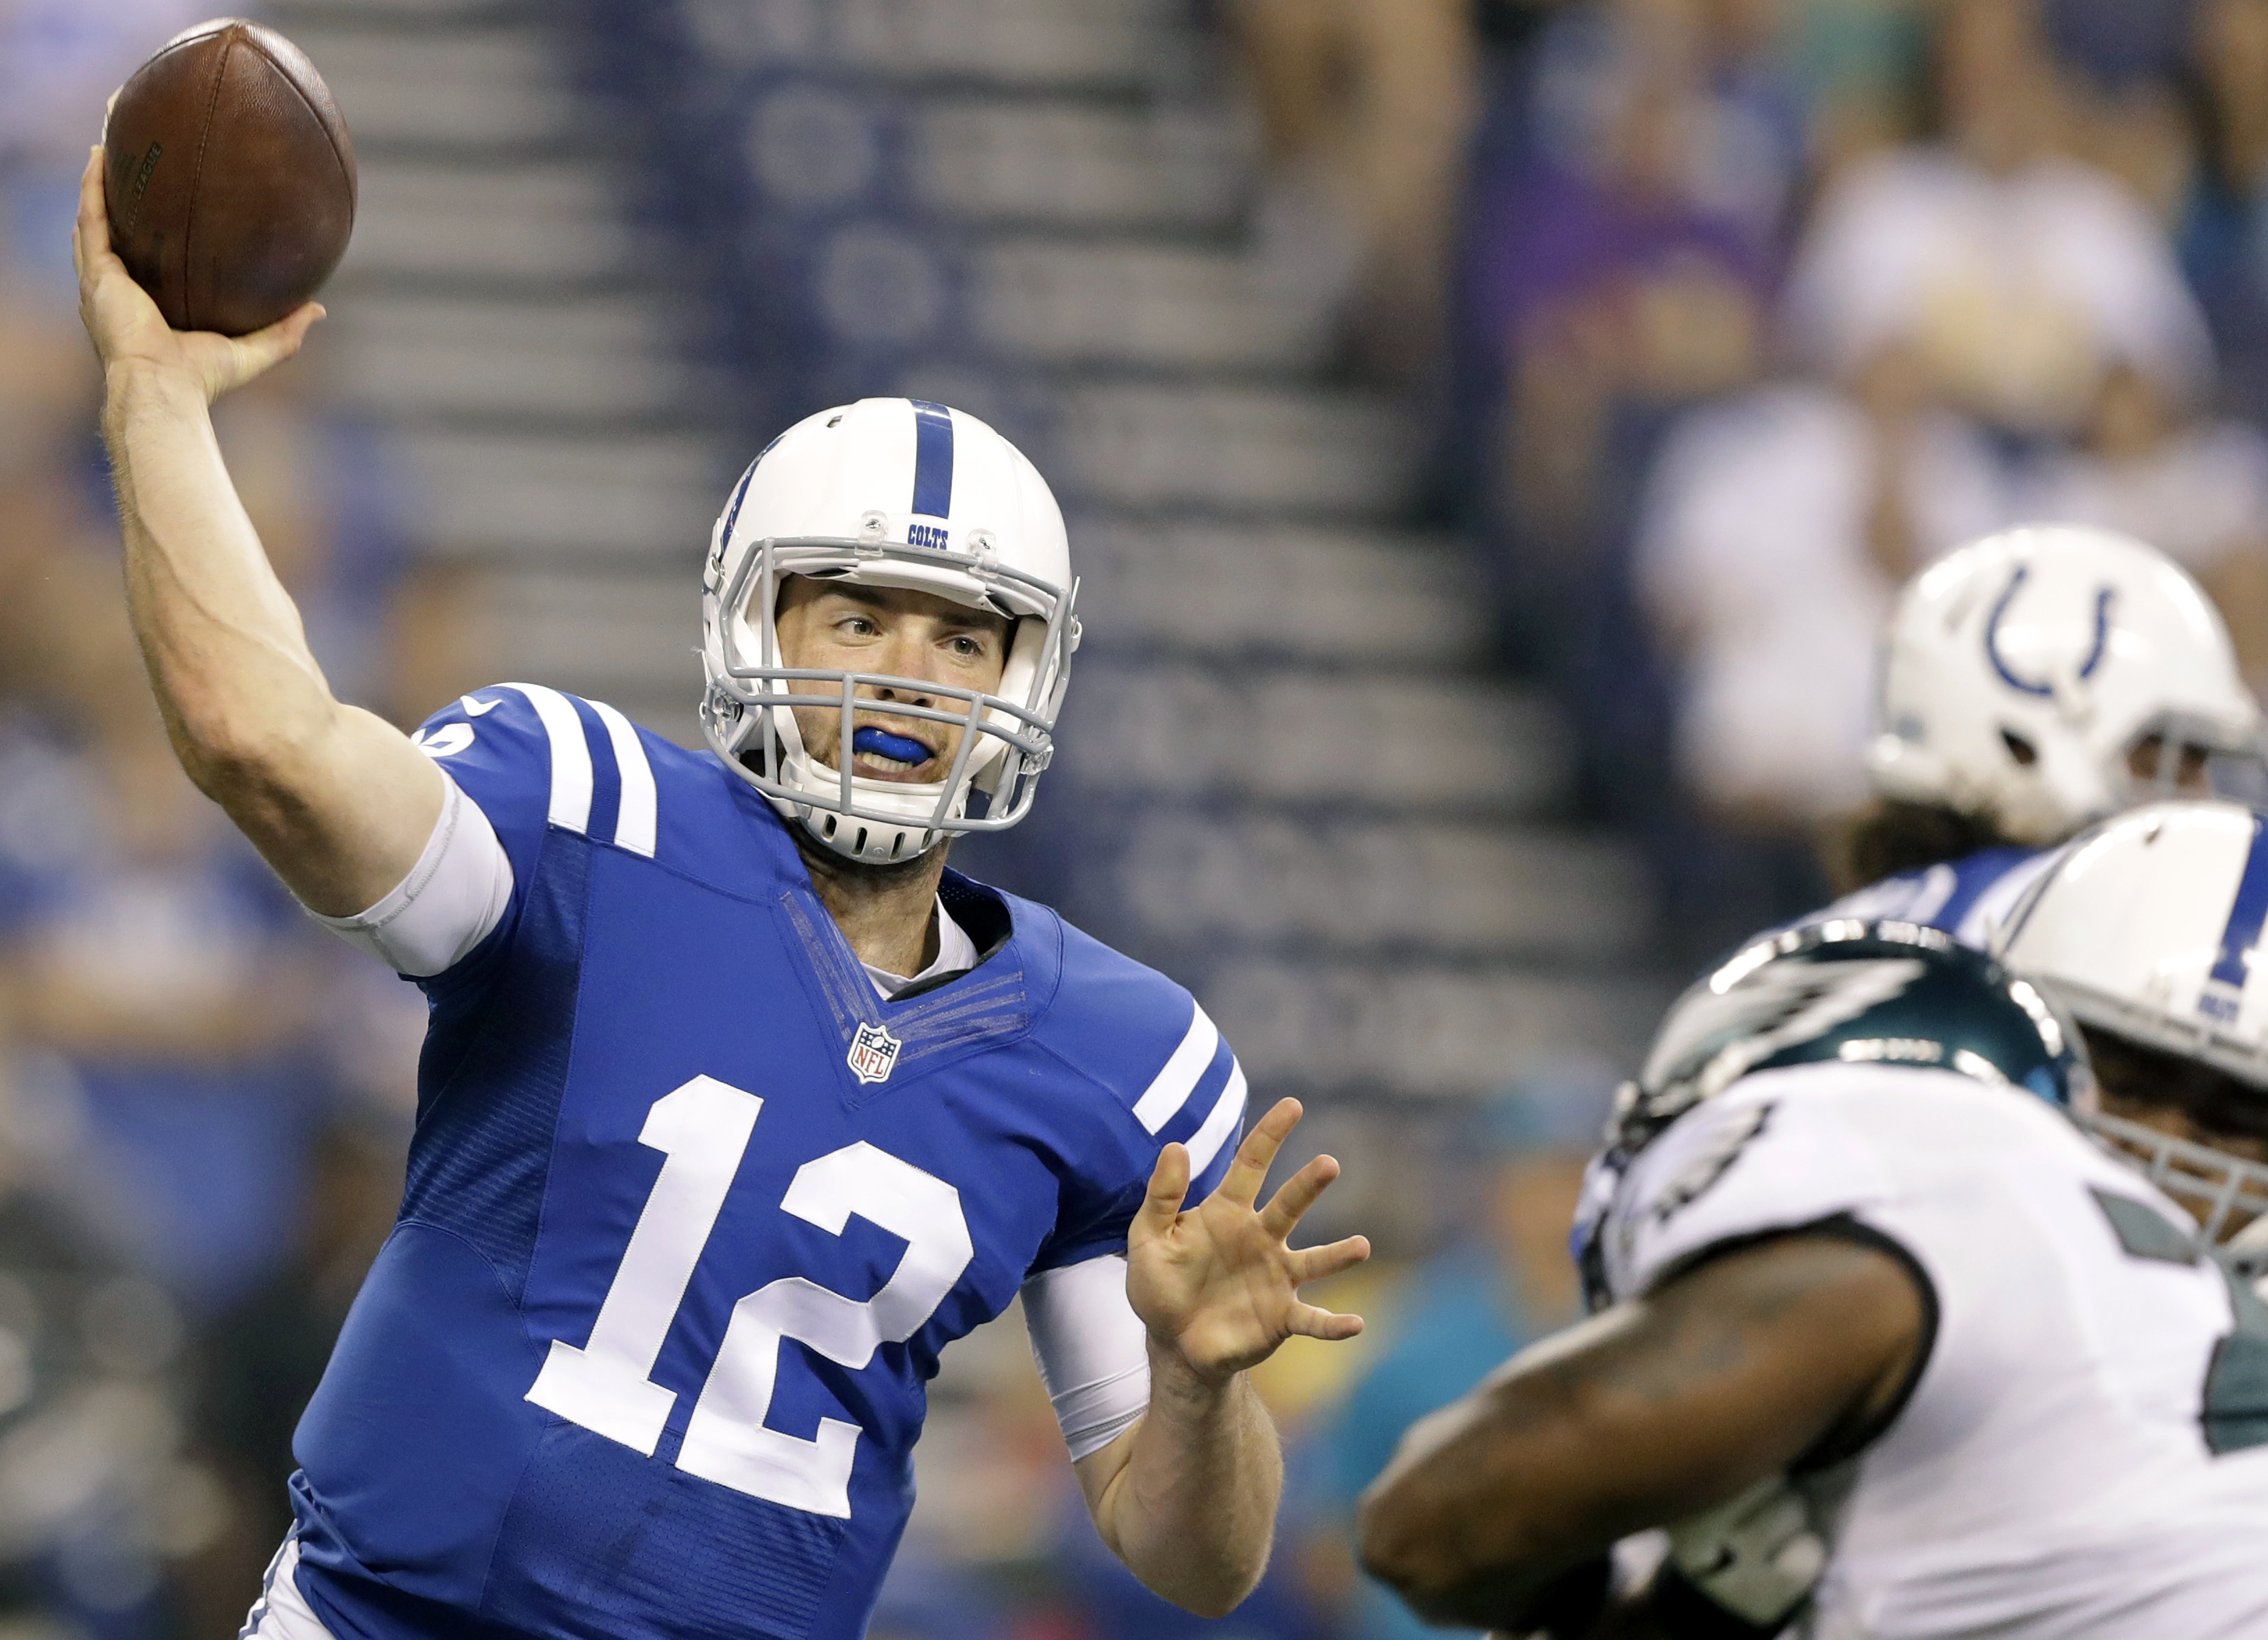 FILE -  In this Aug. 27, 2016, file photo, Indianapolis Colts quarterback Andrew Luck (12) throwing against the Philadelphia Eagles during the first half of an NFL preseason football game in Indianapolis. Indianapolis Colts general manager Ryan Grigson sp